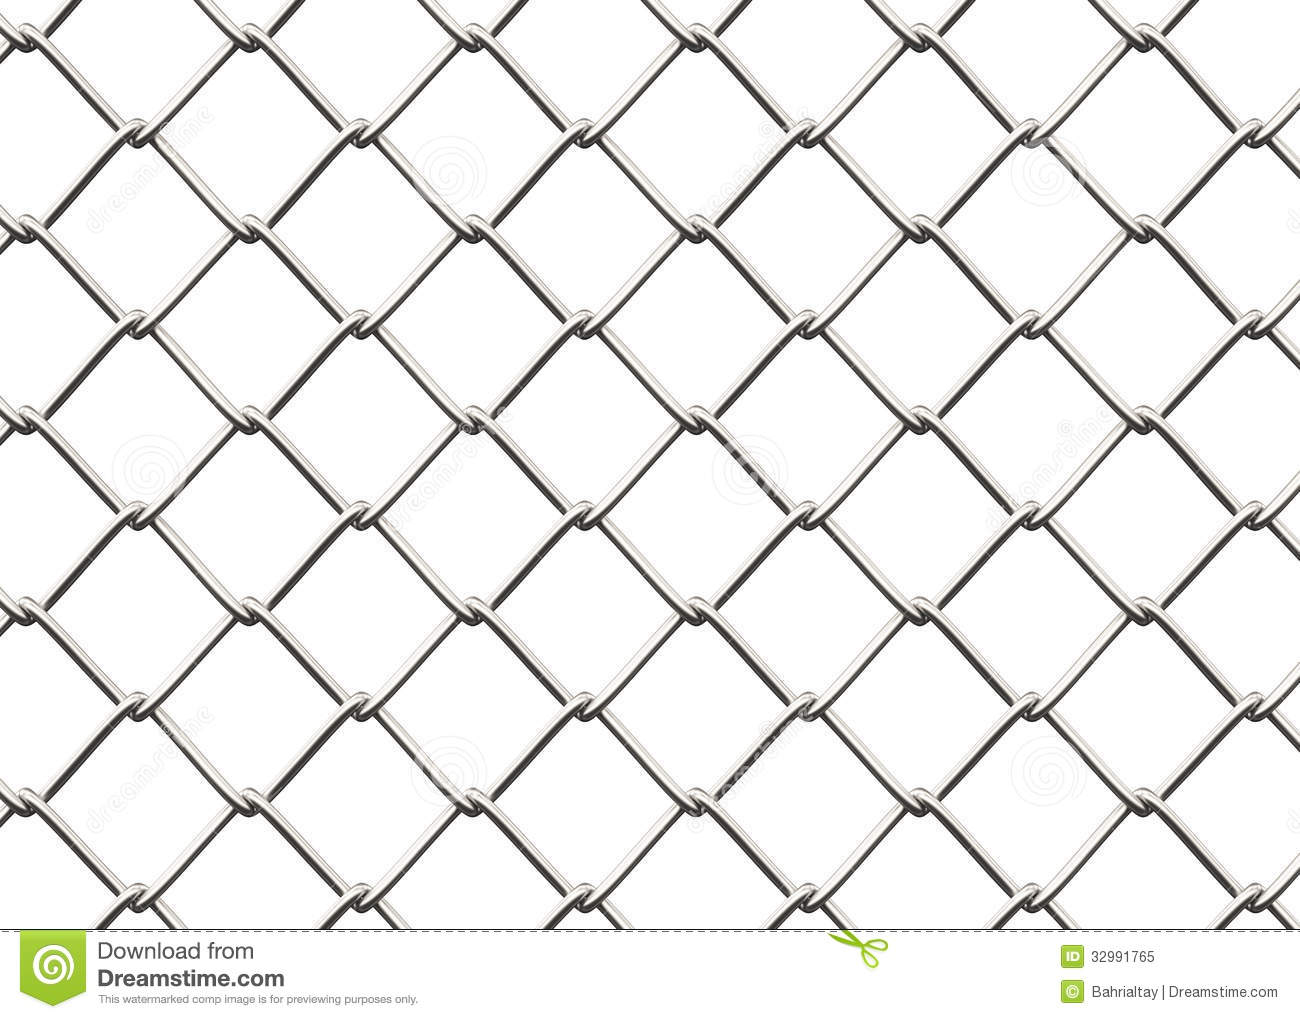 Chain link fence.